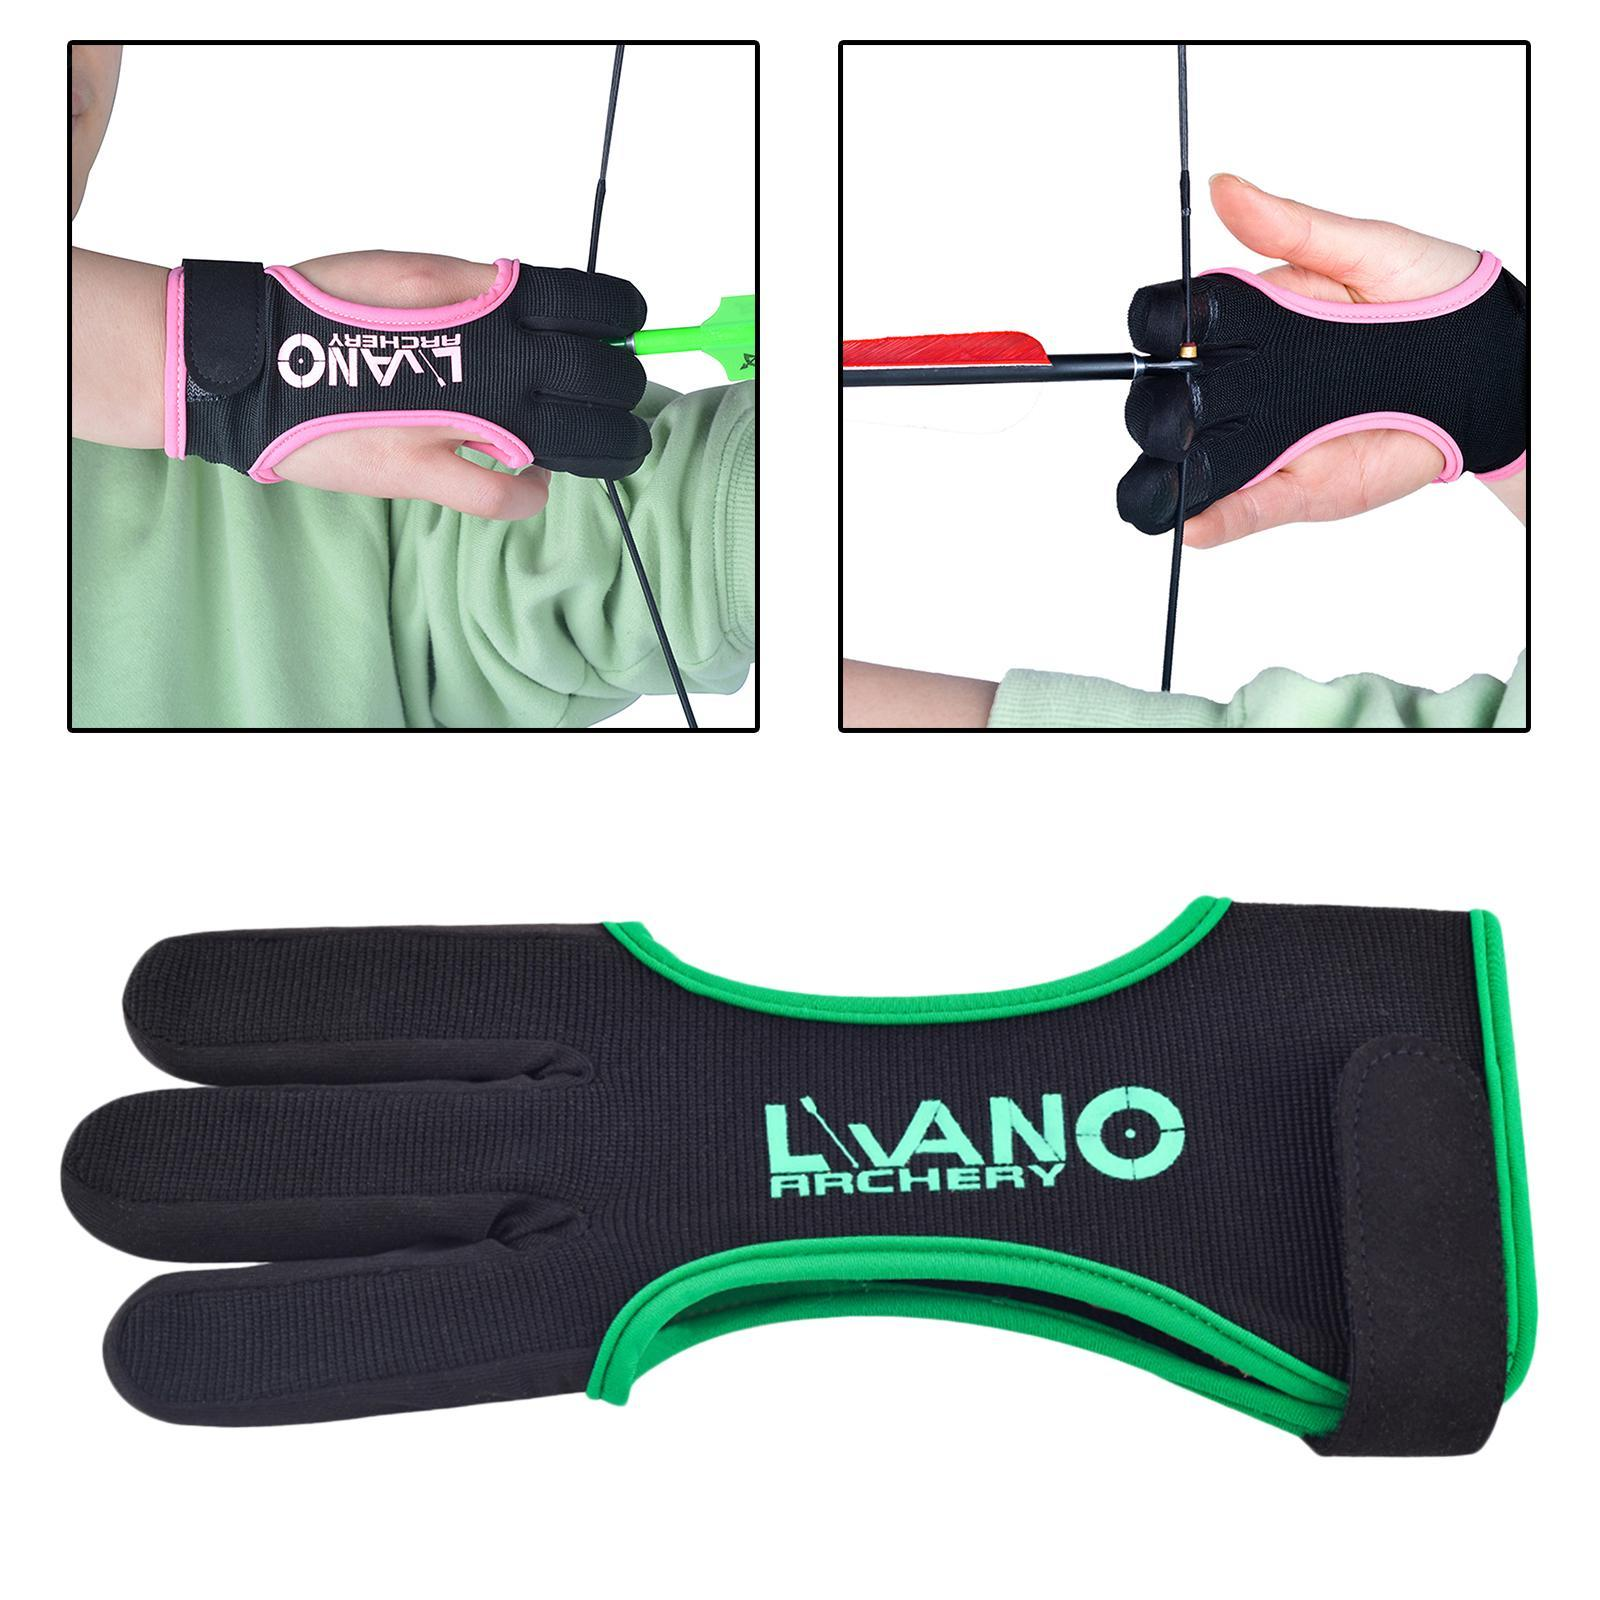 thumbnail 93 - Archery Glove for Recurve & Compound Bow 3 Finger Guard for Women Men Youth